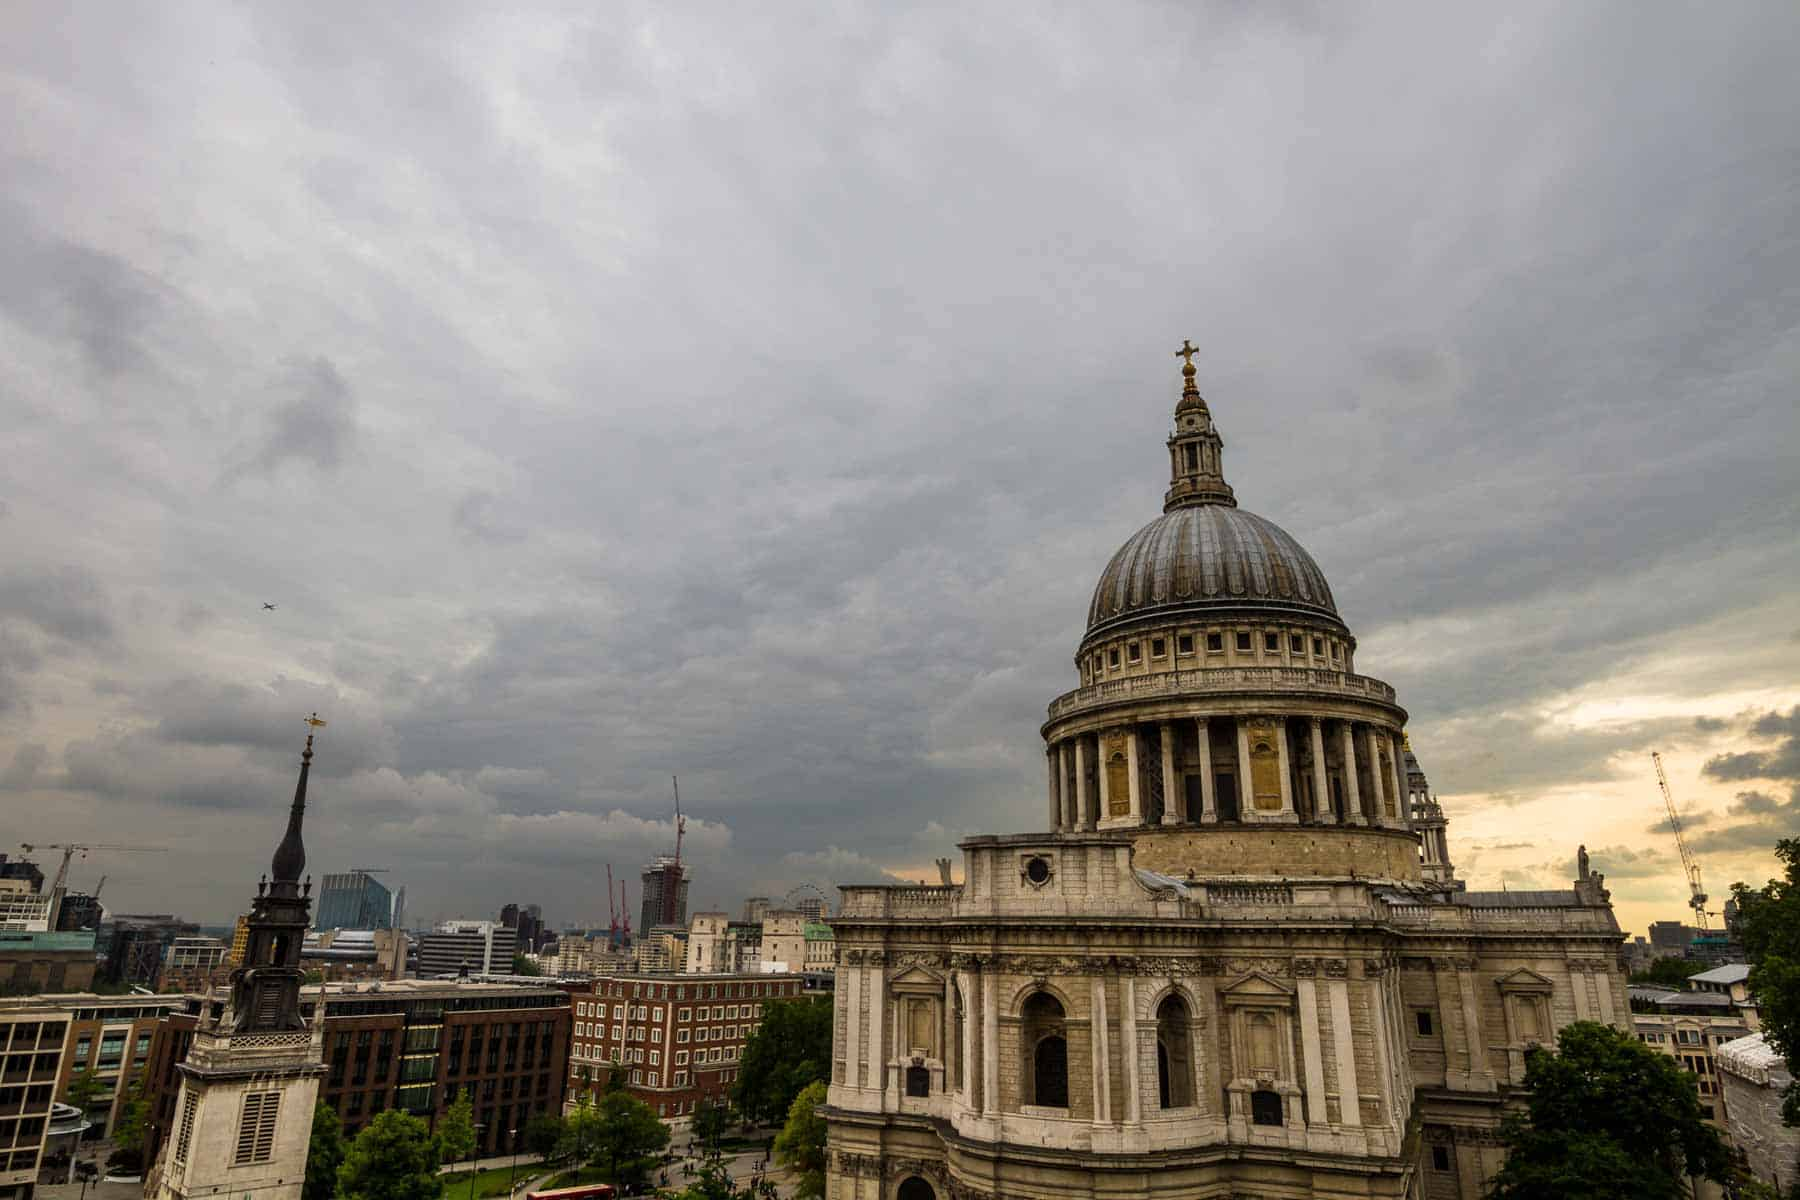 St Pauls cathedral, London, on a cloudy day. Photo © Piccia Neri, all rights reserved.